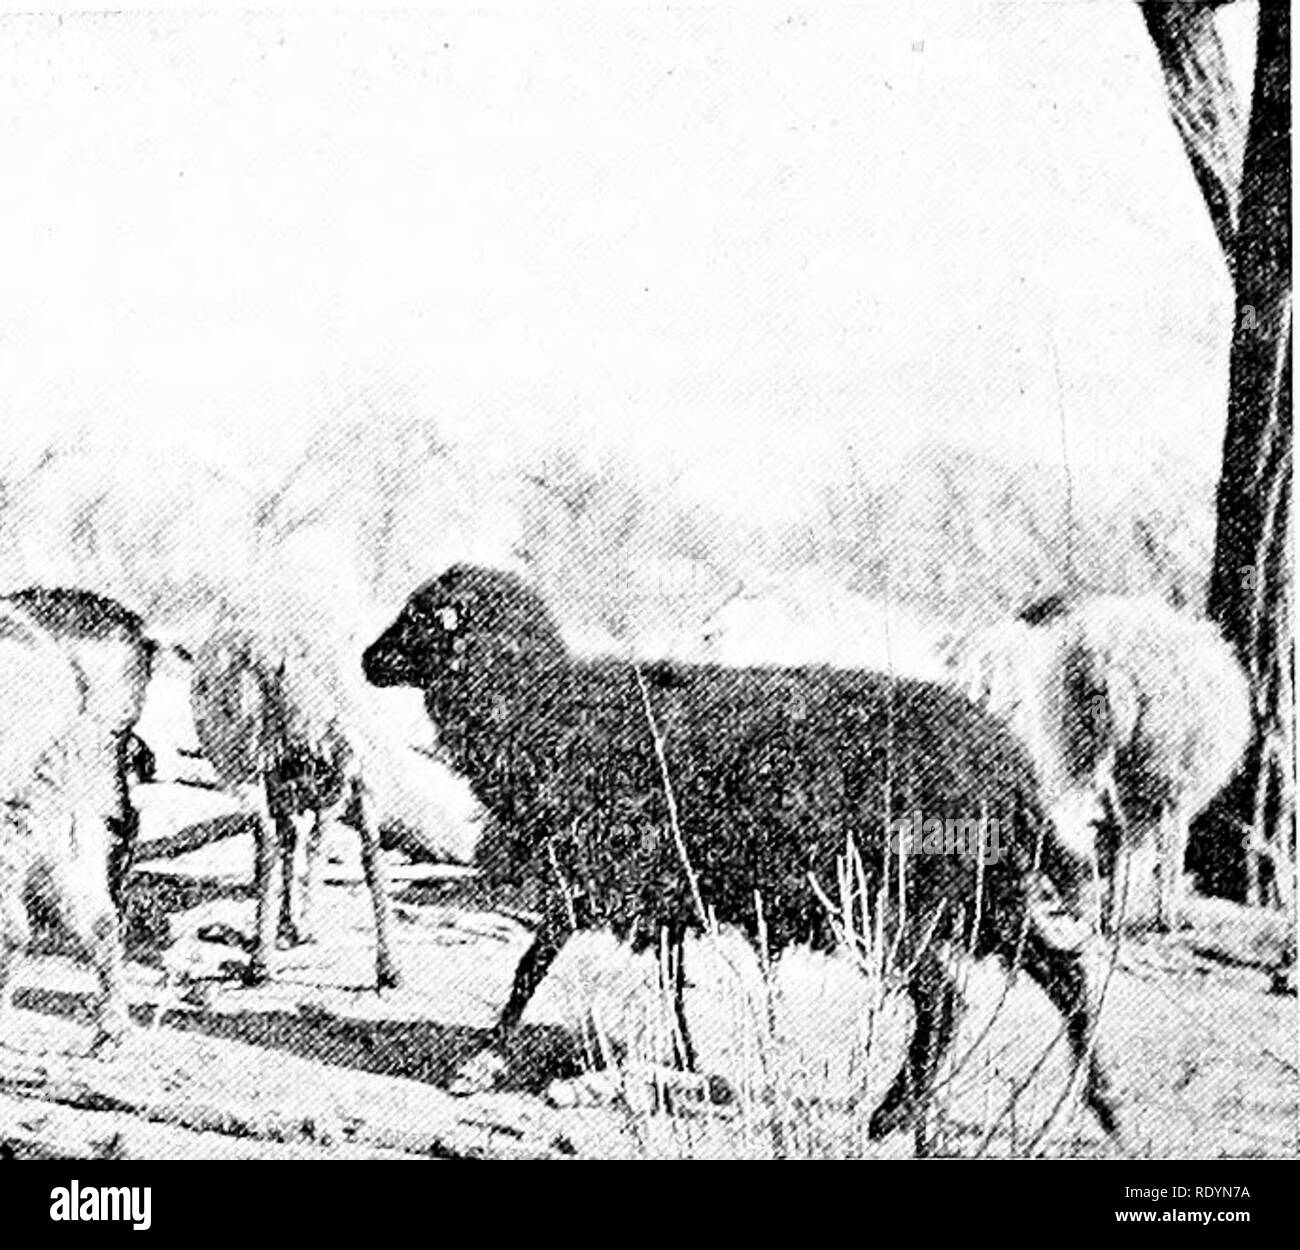 . Productive sheep husbandry . Sheep. Fig. 13 —Sheep and goats belonging to the Navajo Indians The sheep are ill-shaped and not uniform in color, it and it still receives attention in leading sheep countries such as Australia, New Zealand, South Africa, North America, and South America. Color of Wool.—In improving wool, color has received careful attention. Variety of color was perhaps regarded favorably in early times, but when various dye stuffs came to be used, white wool was preferred, because none but a black dye can be used on wool which is black, brown, or gray. It may be that white she - Stock Image